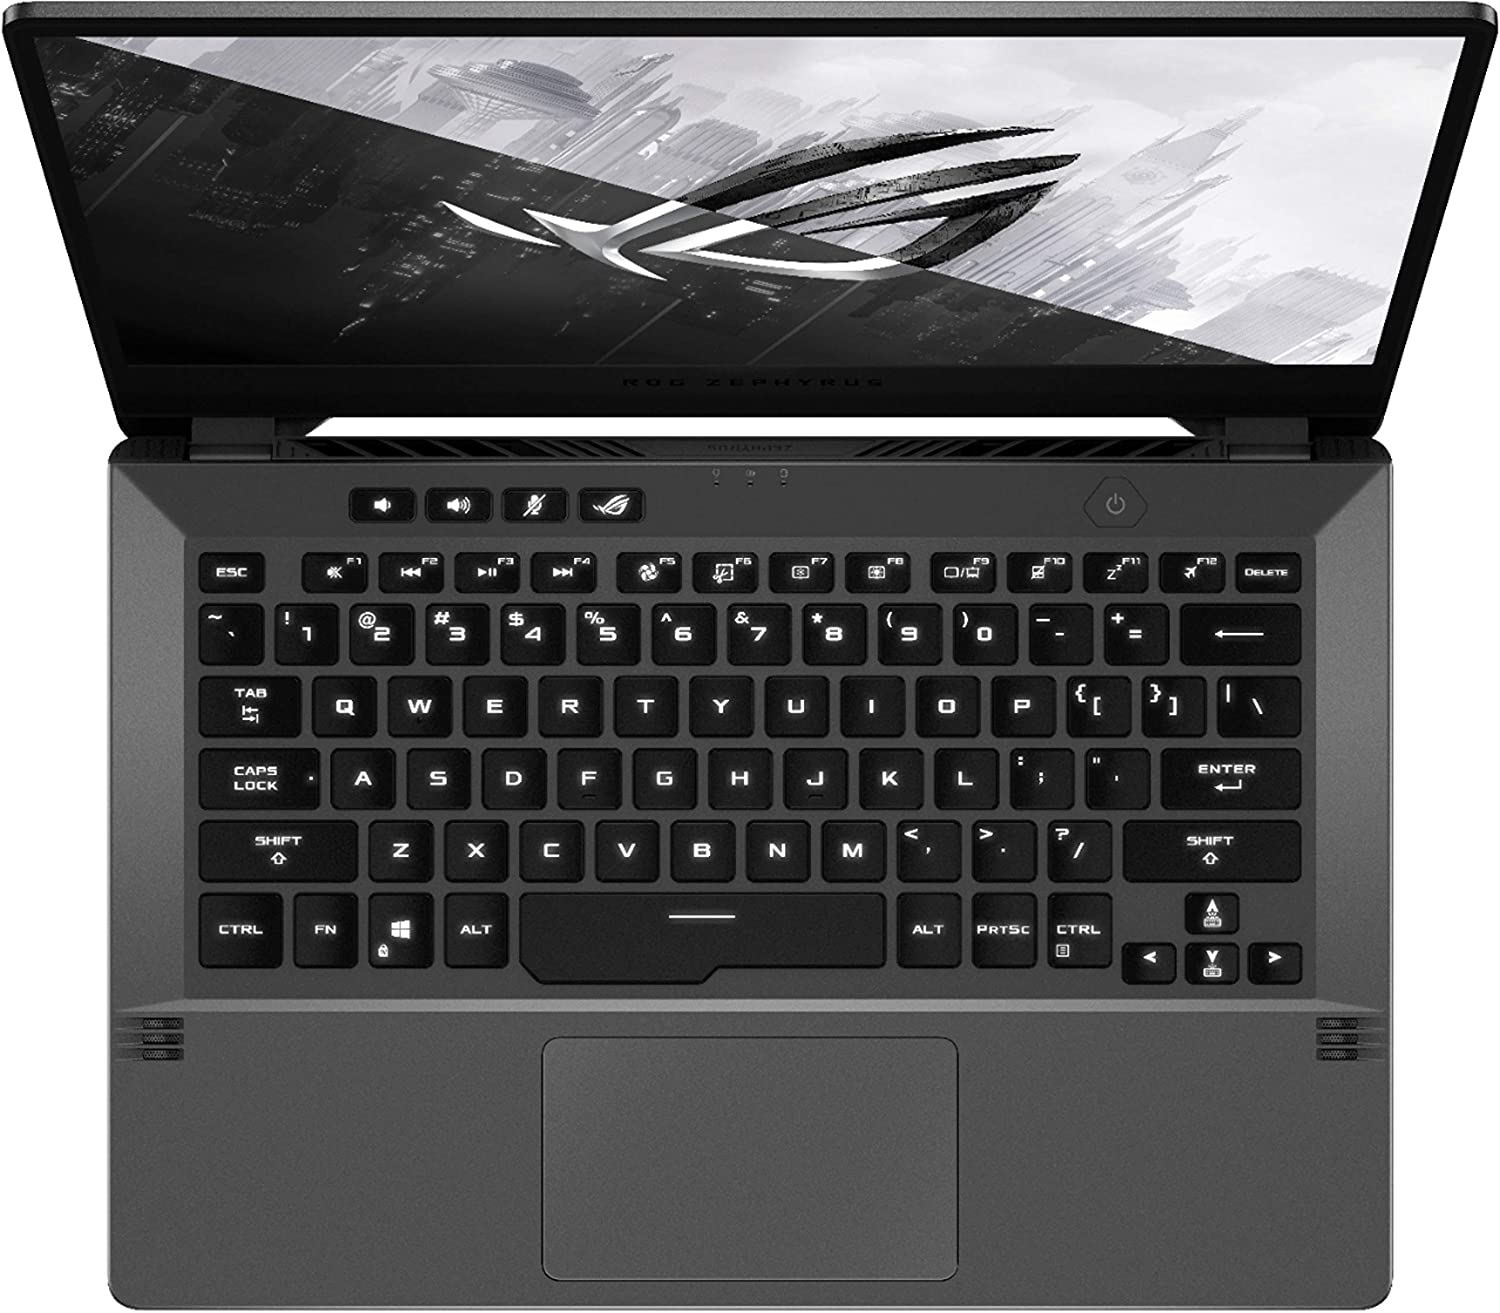 ASUS ROG Zephyrus G14 - AMD Ryzen 7 4800HS, 8GB RAM, 512GB SSD, VR Ready, Nvidia GeForce GTX 1650, Windows 10 - Eclipse Gray